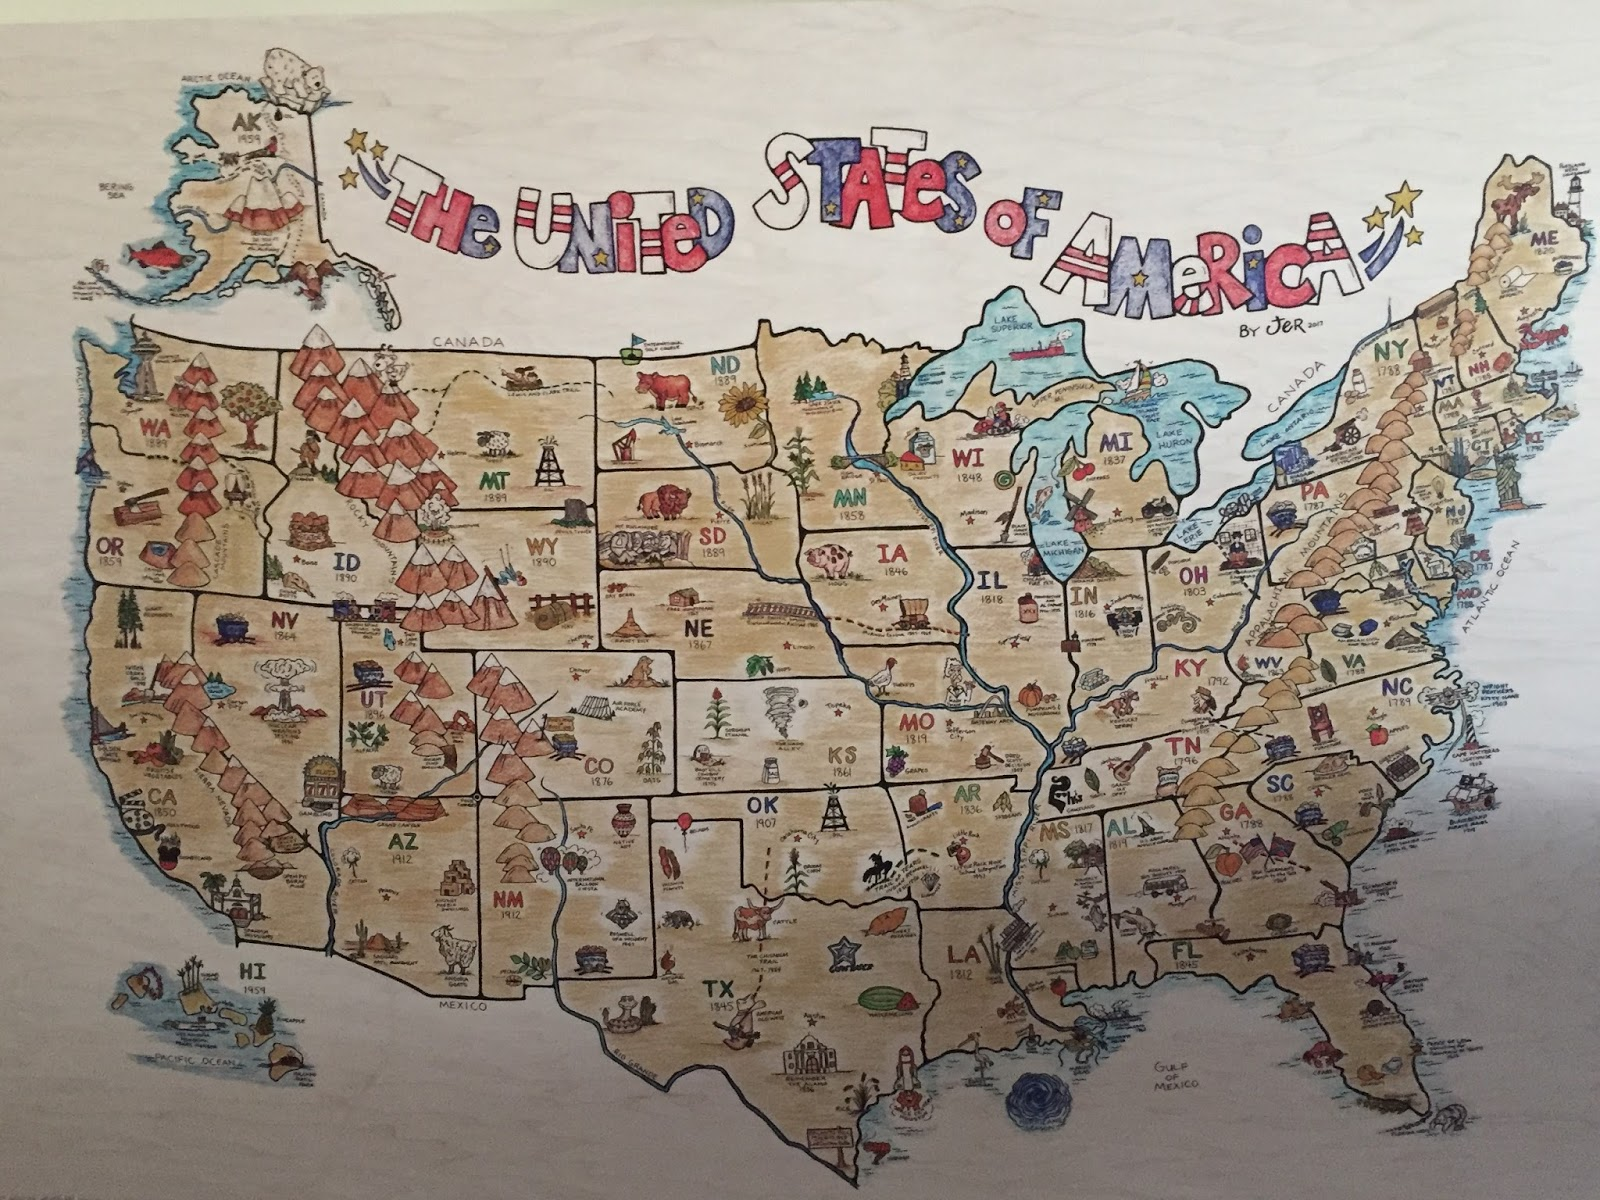 this united states of america map was a gift for my brother who is a history teacher but since its creation i have had multiple requests for copies